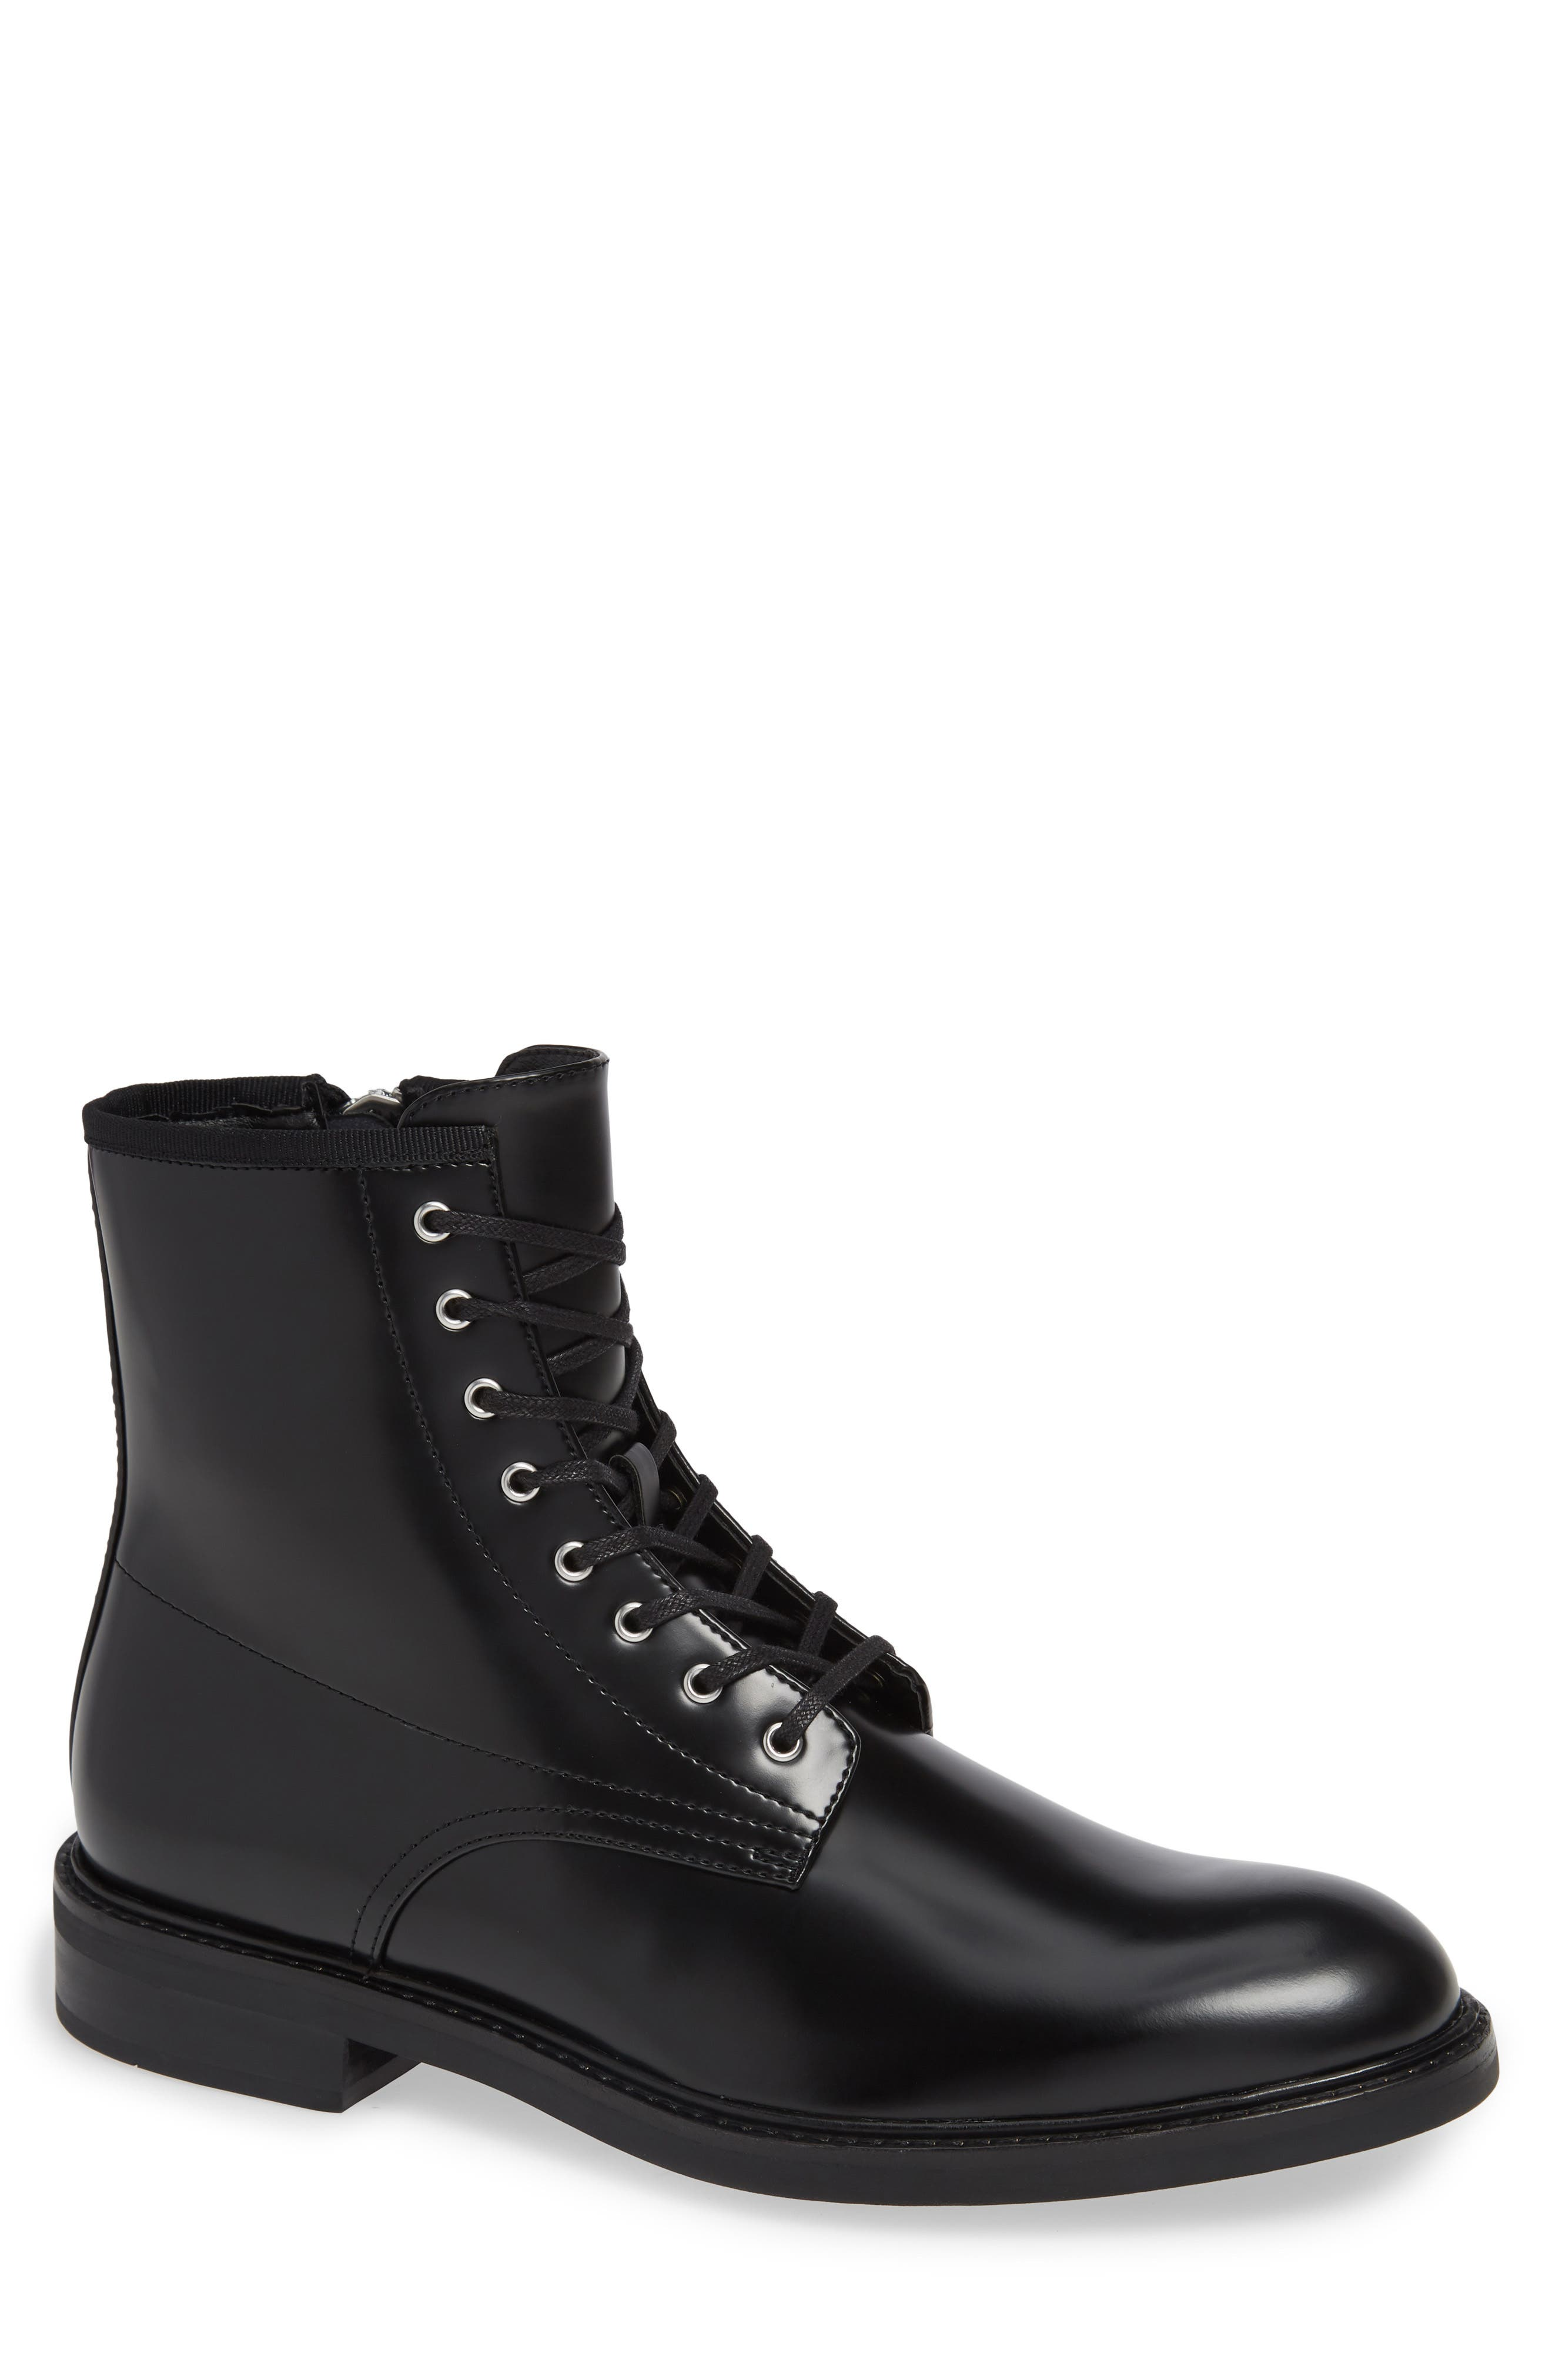 Keeler Combat Boot,                             Main thumbnail 1, color,                             BLACK LEATHER